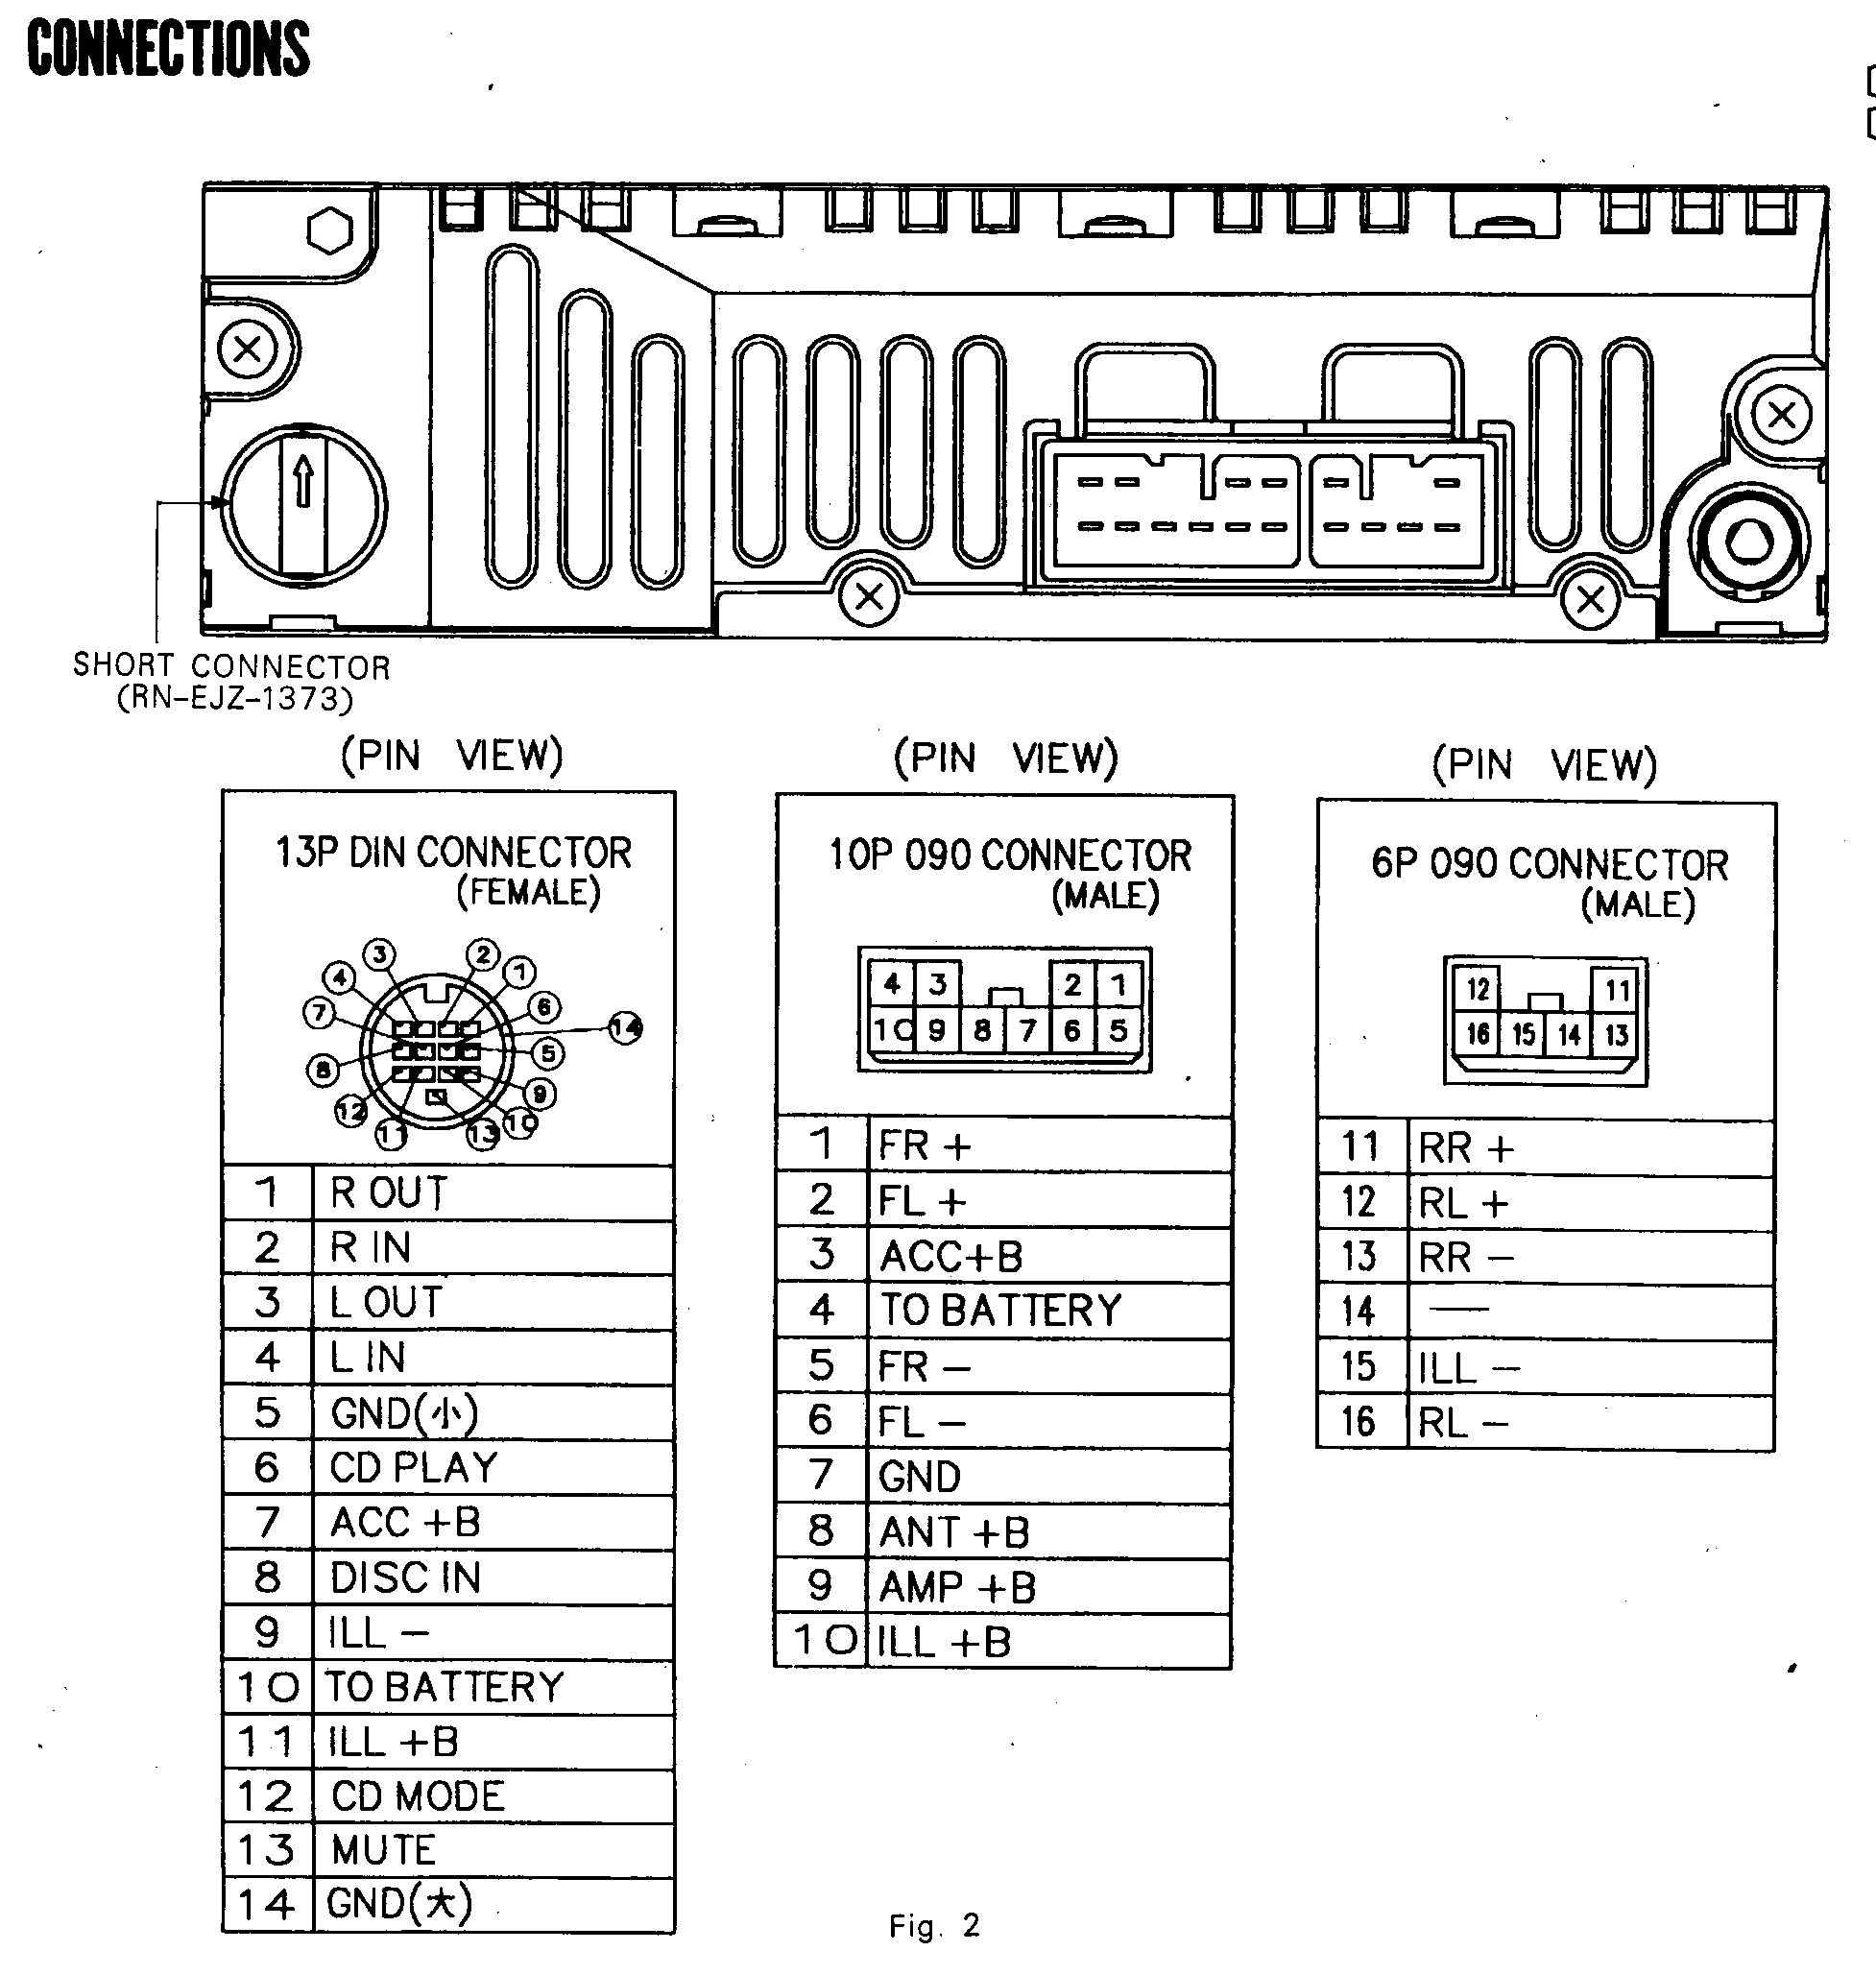 hight resolution of 1997 toyota camry radio wiring diagram toyota wiring harness diagram fresh wiring color code toyota